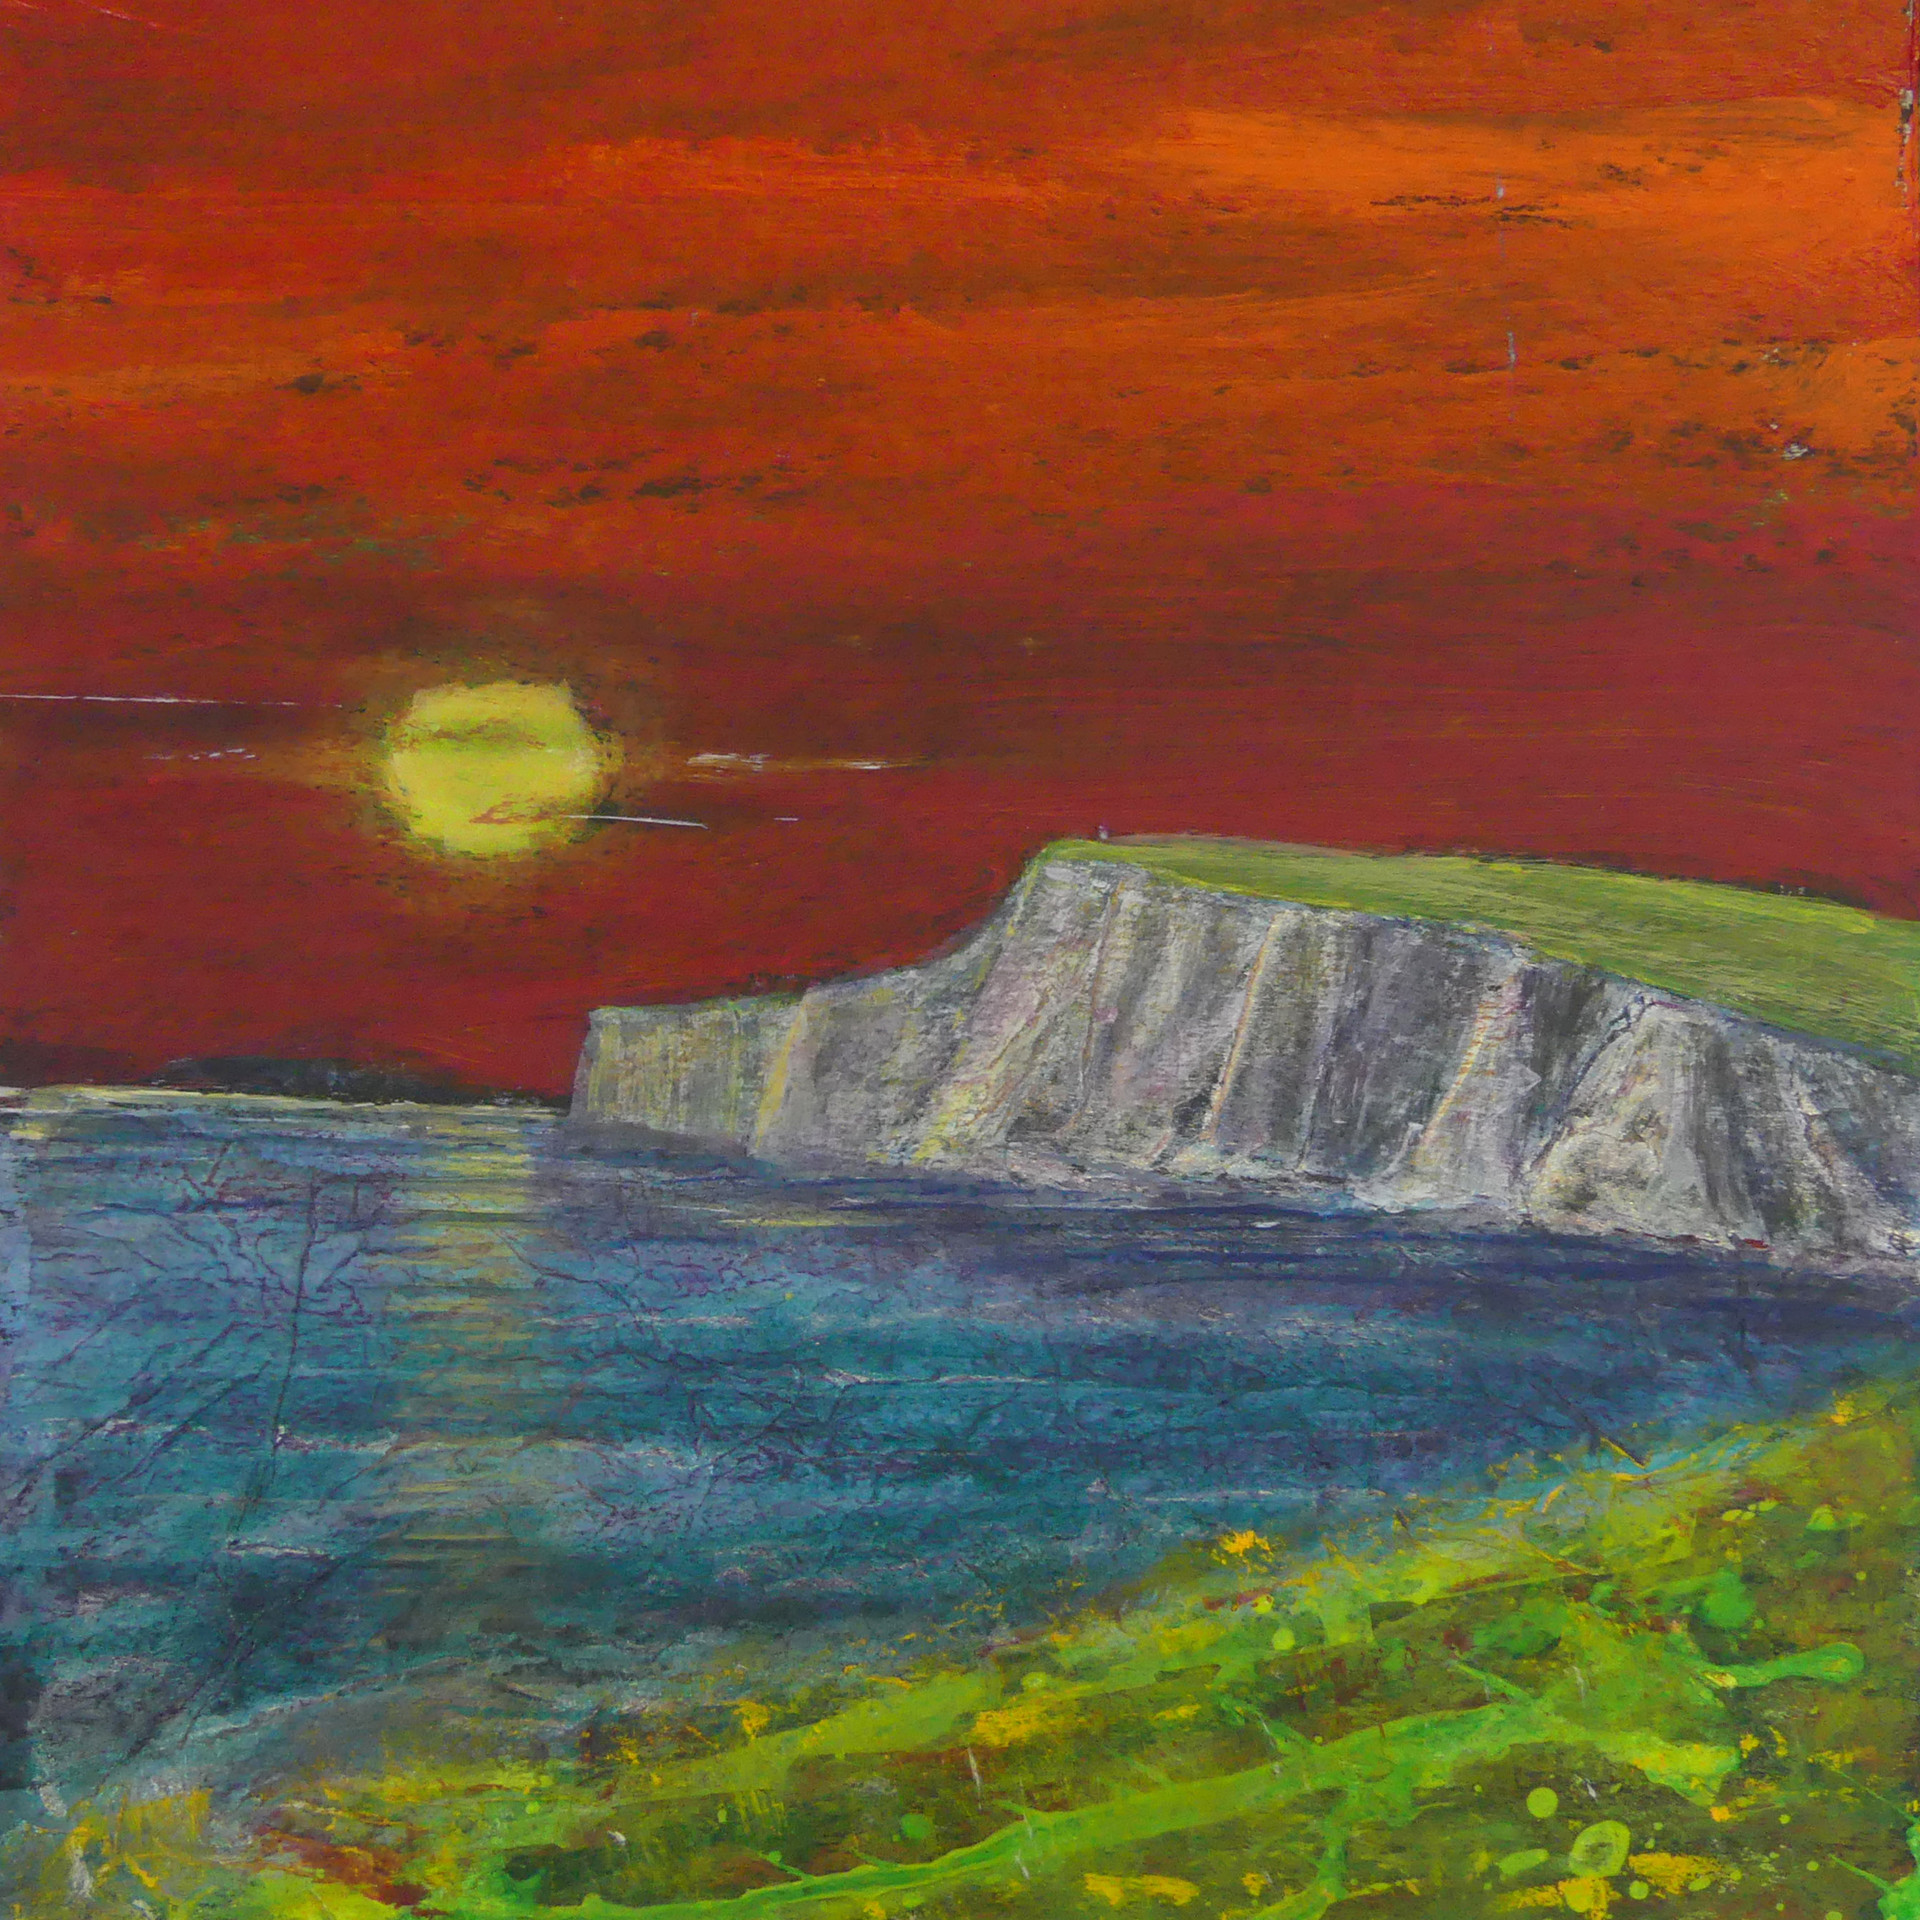 Burning Sky Over the Wight  - SOLD